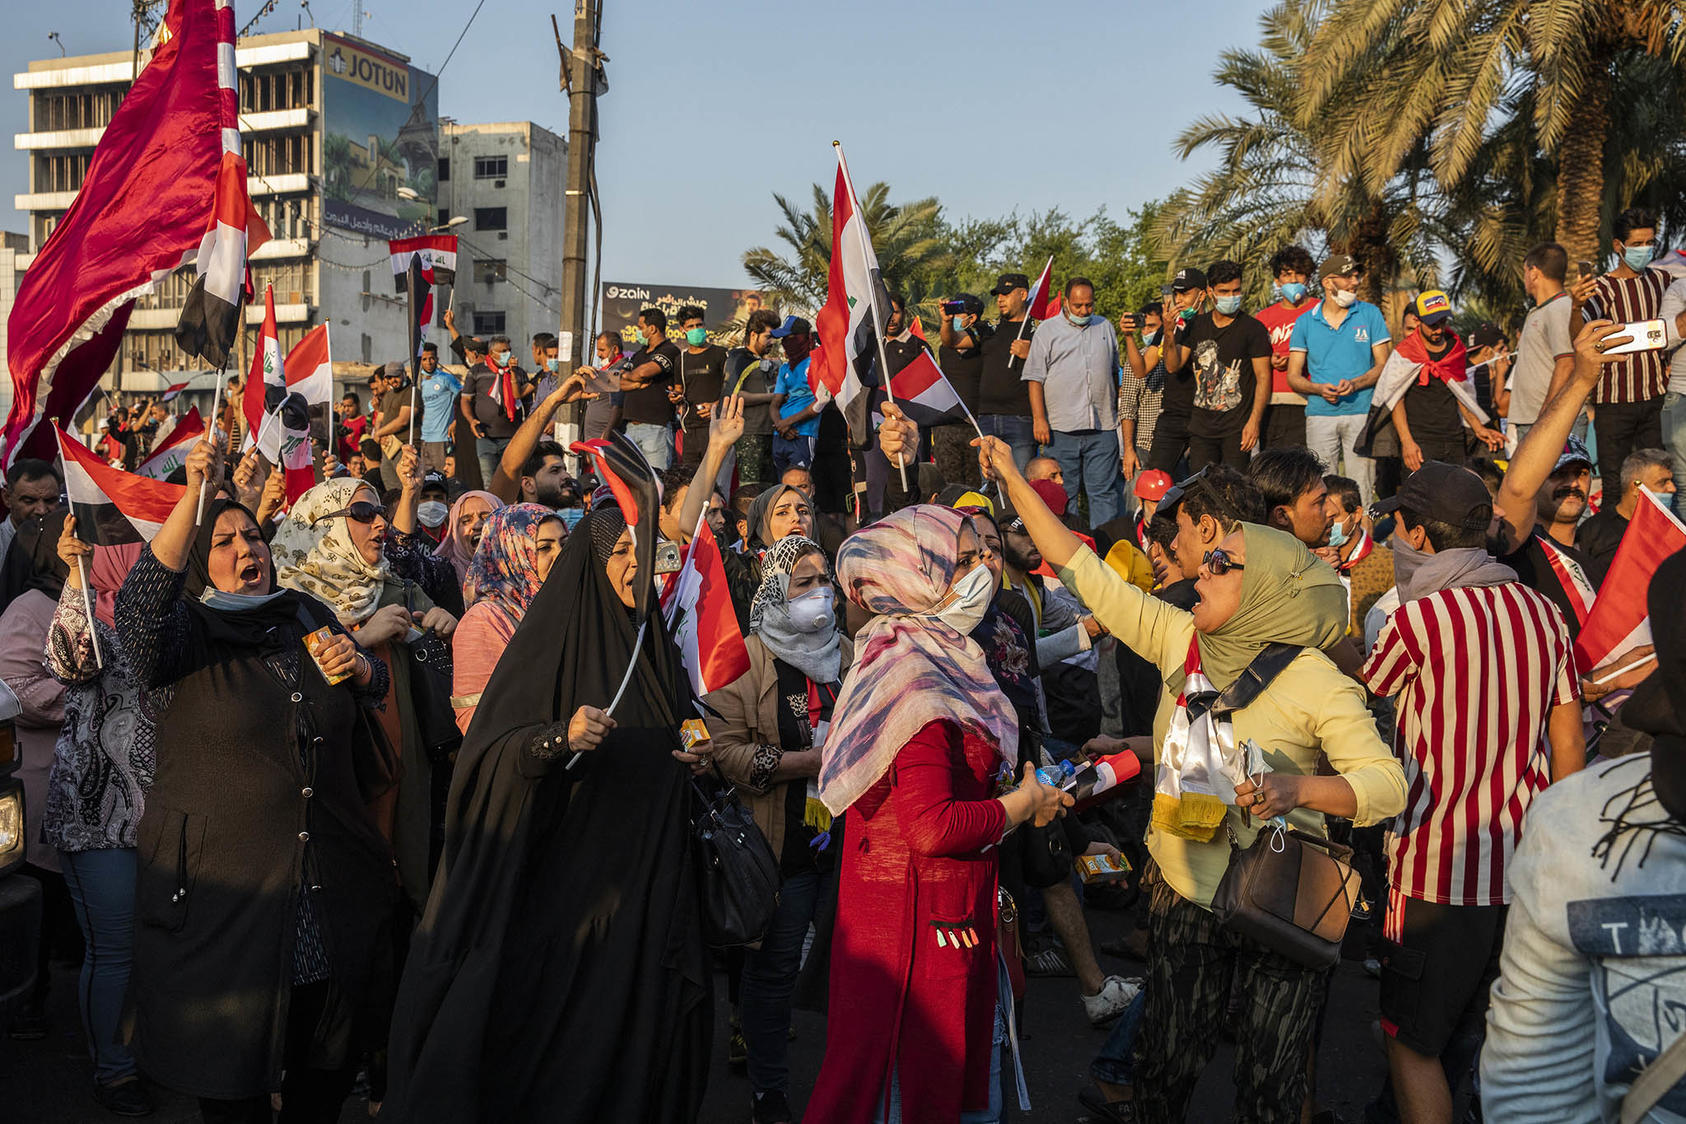 Protesters fill Tahrir Square in Baghdad, Oct. 30, 2019. (Ivor Prickett/The New York Times)